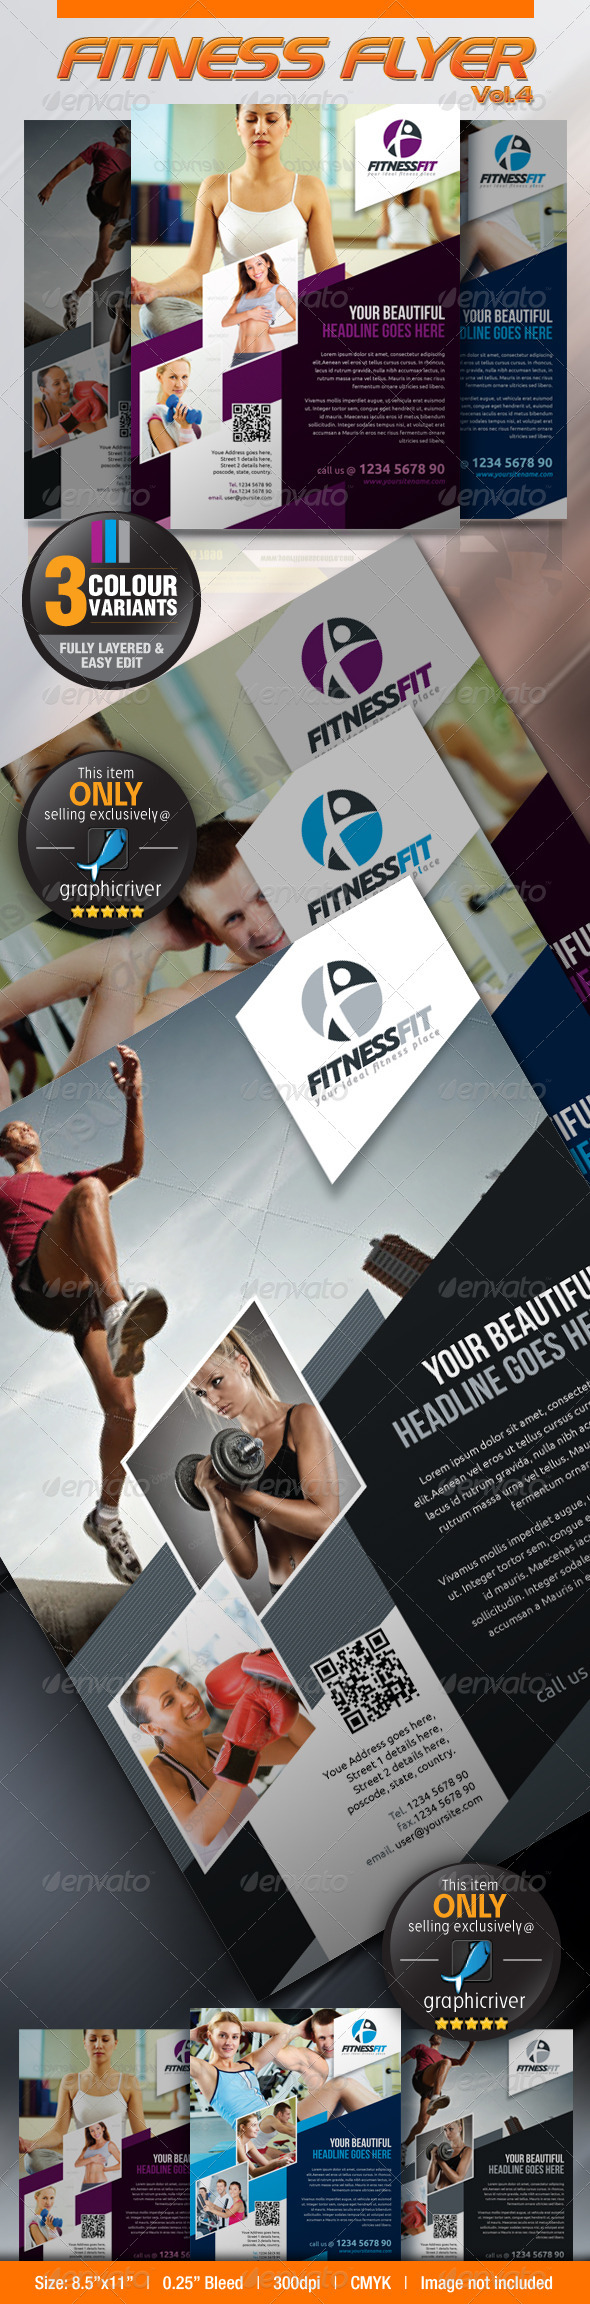 GraphicRiver Fitness Flyer Vol.4 2872424